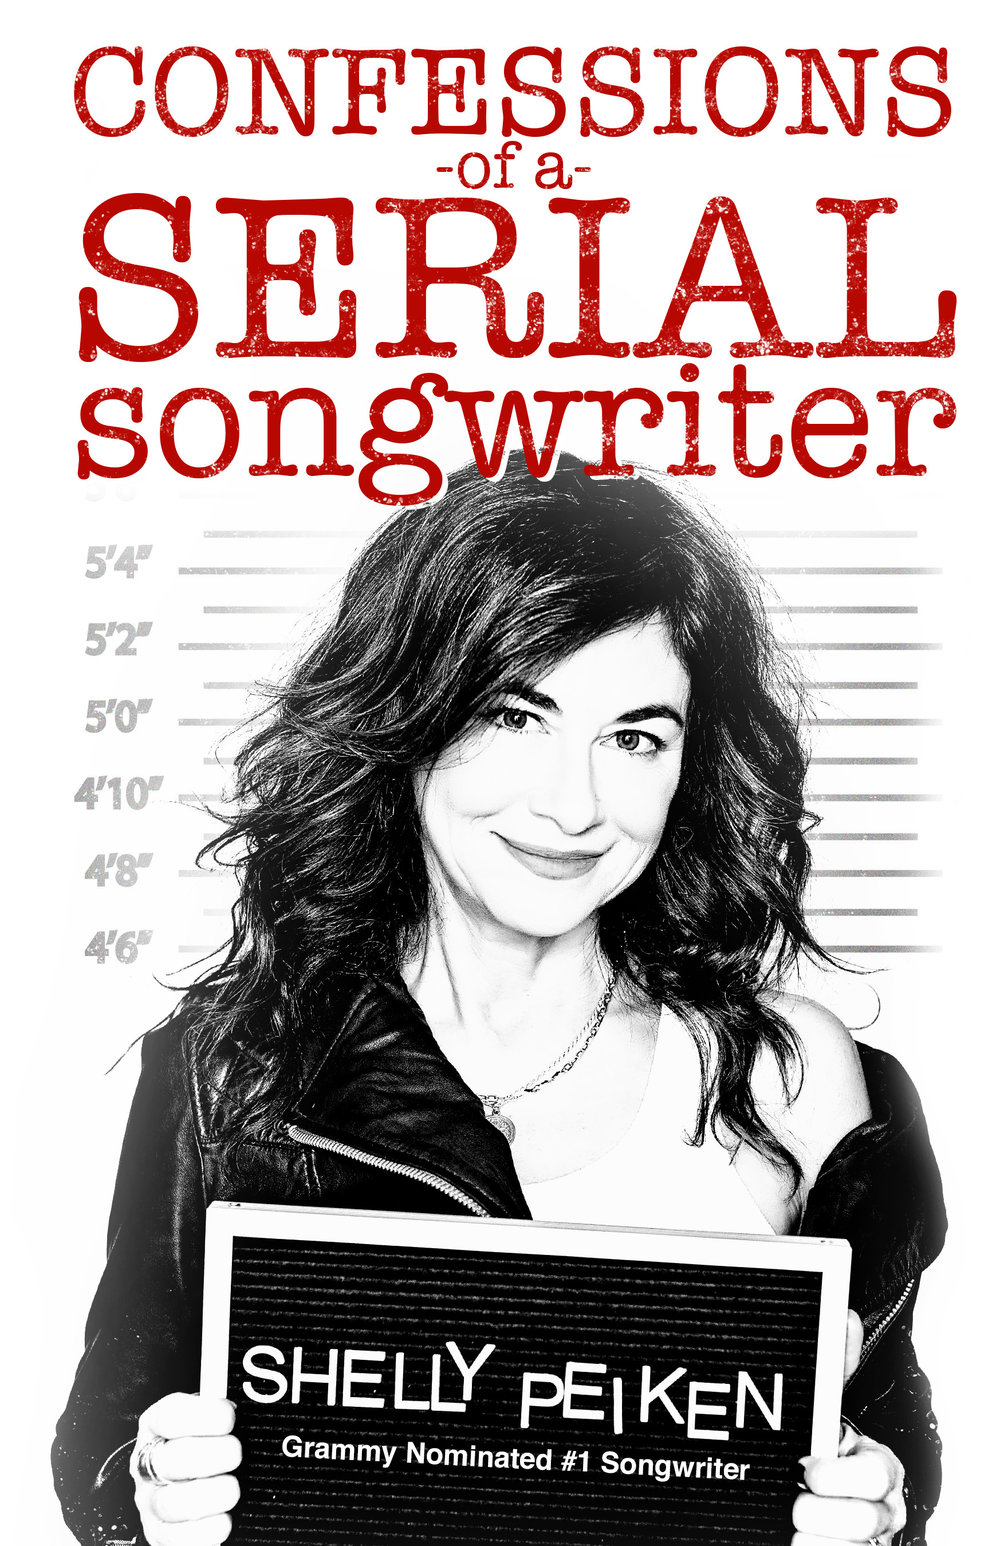 5 Books That Are Nominated for a Grammy Award in 2018: 2) Confessions of a Serial Songwriter by Shelly Peiken